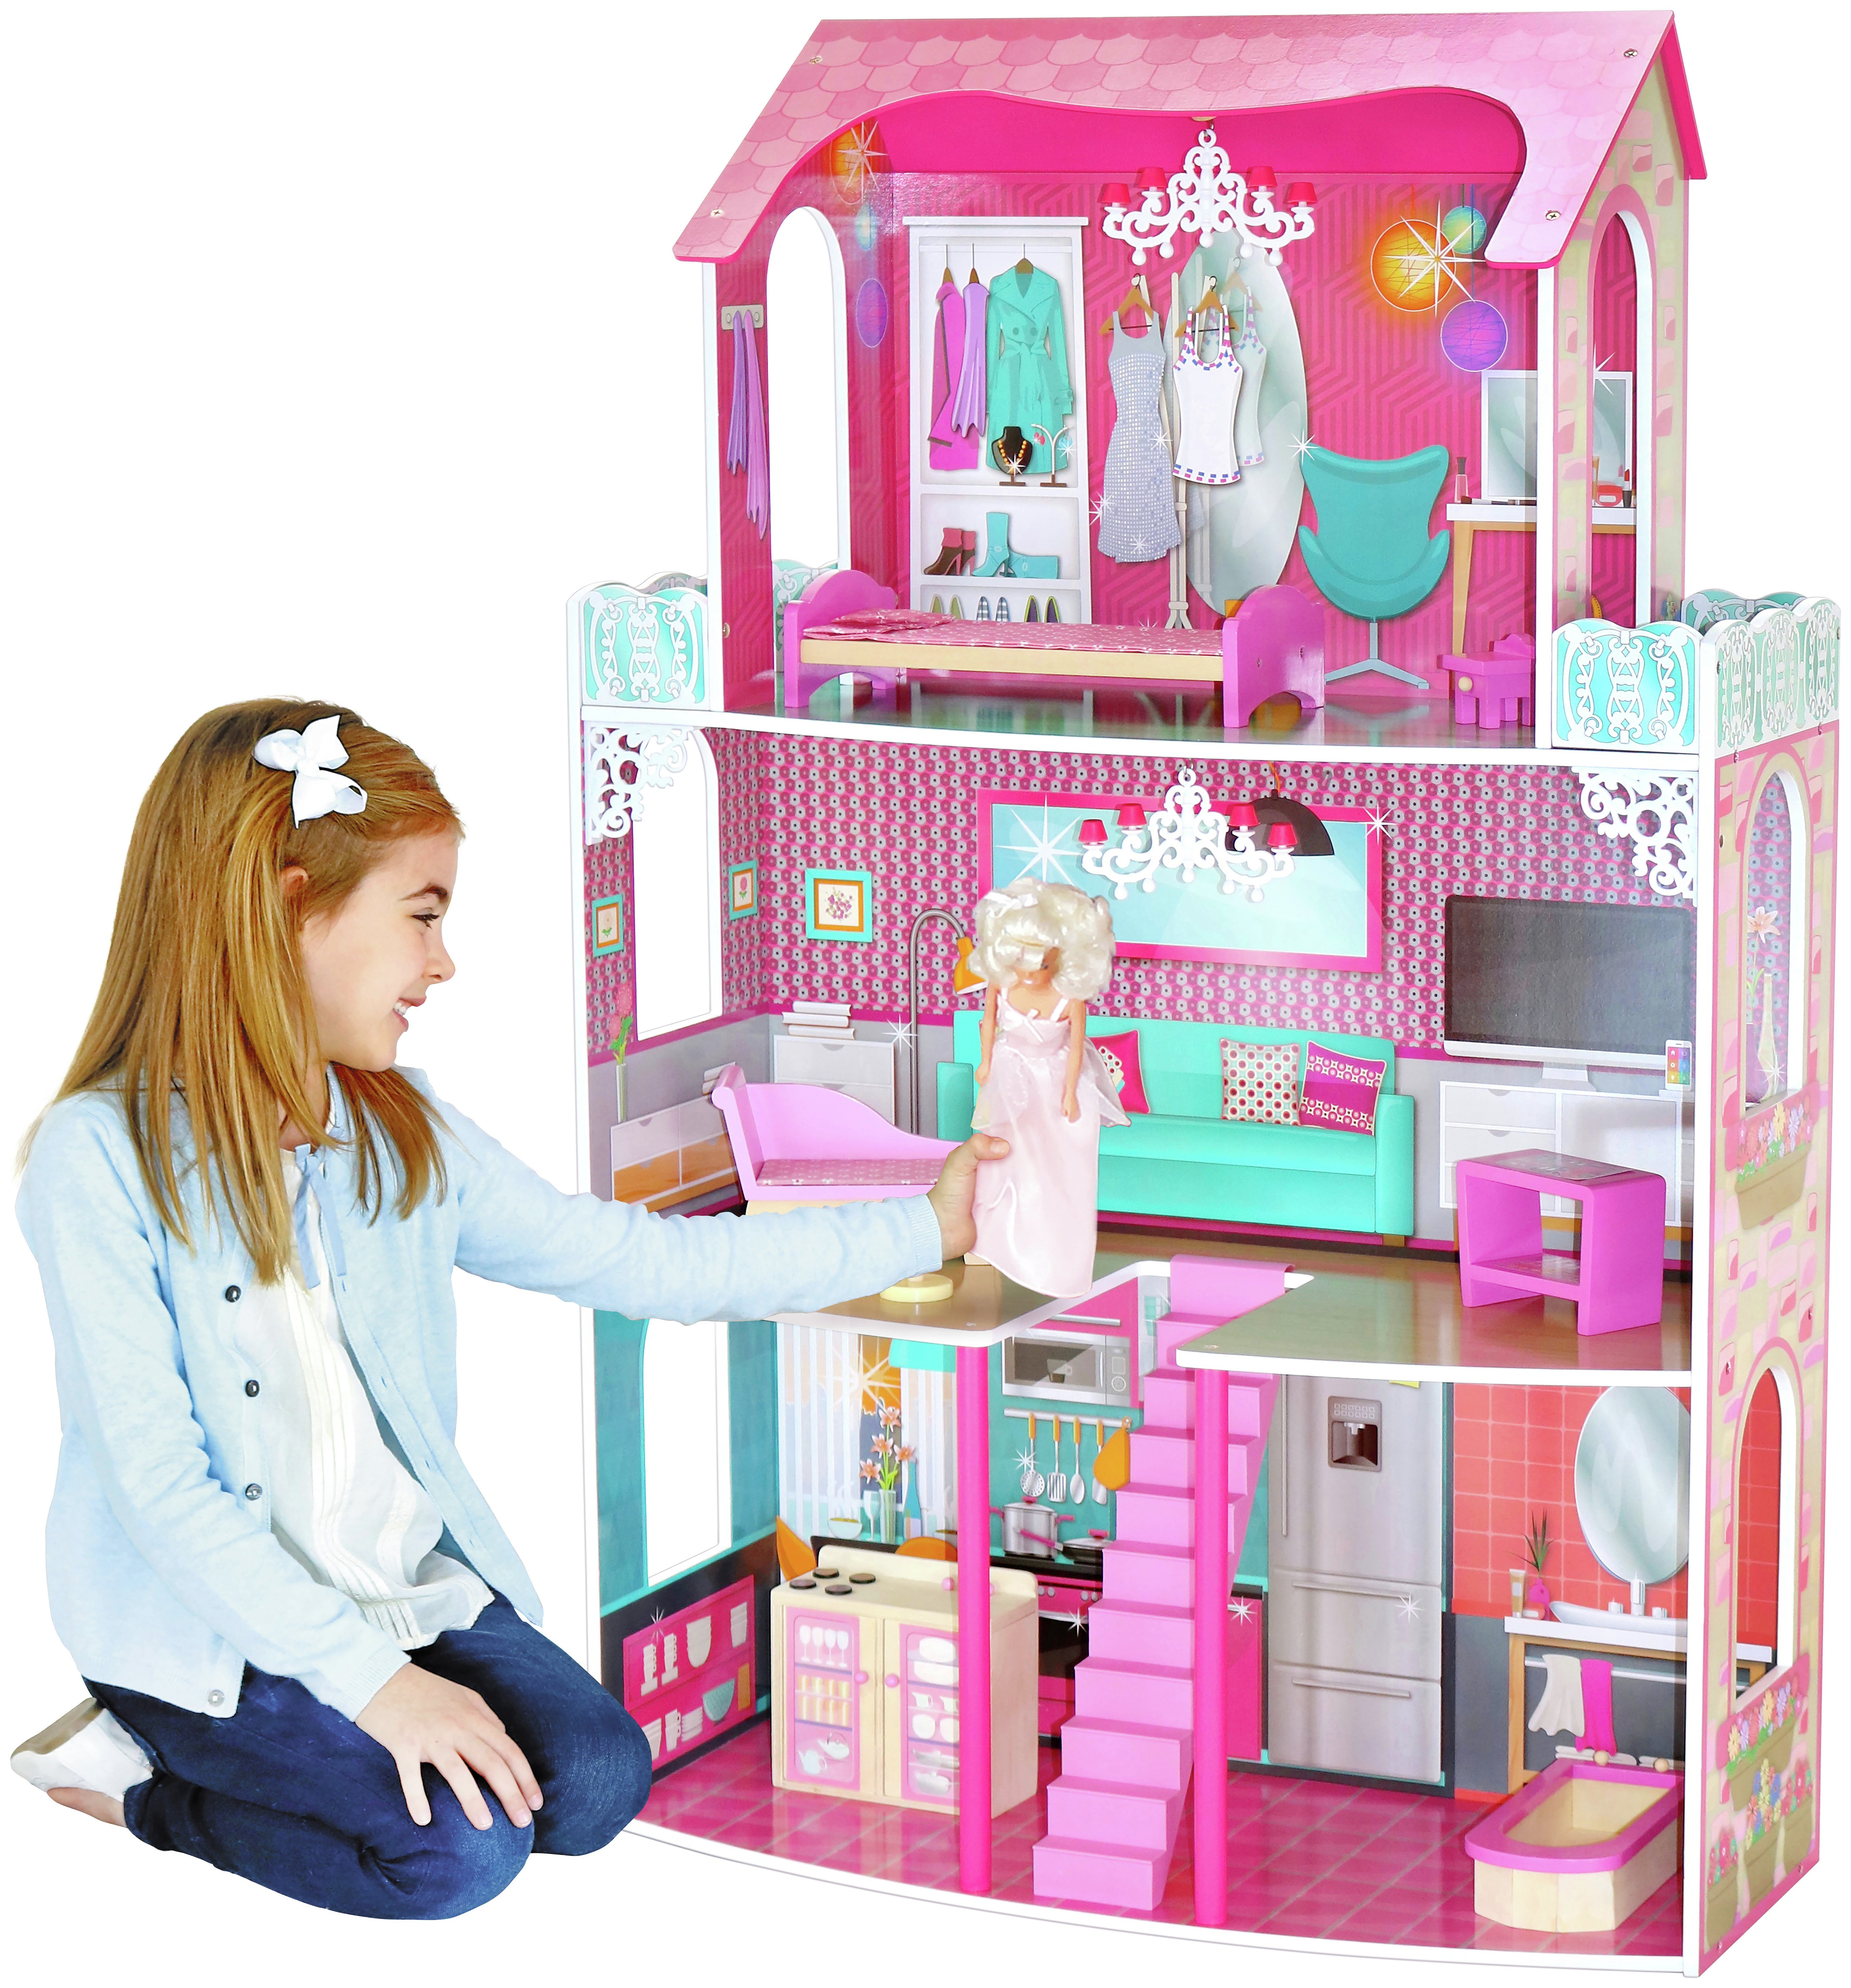 Buy Chad Valley 3 Storey Glamour Mansion Dolls House From